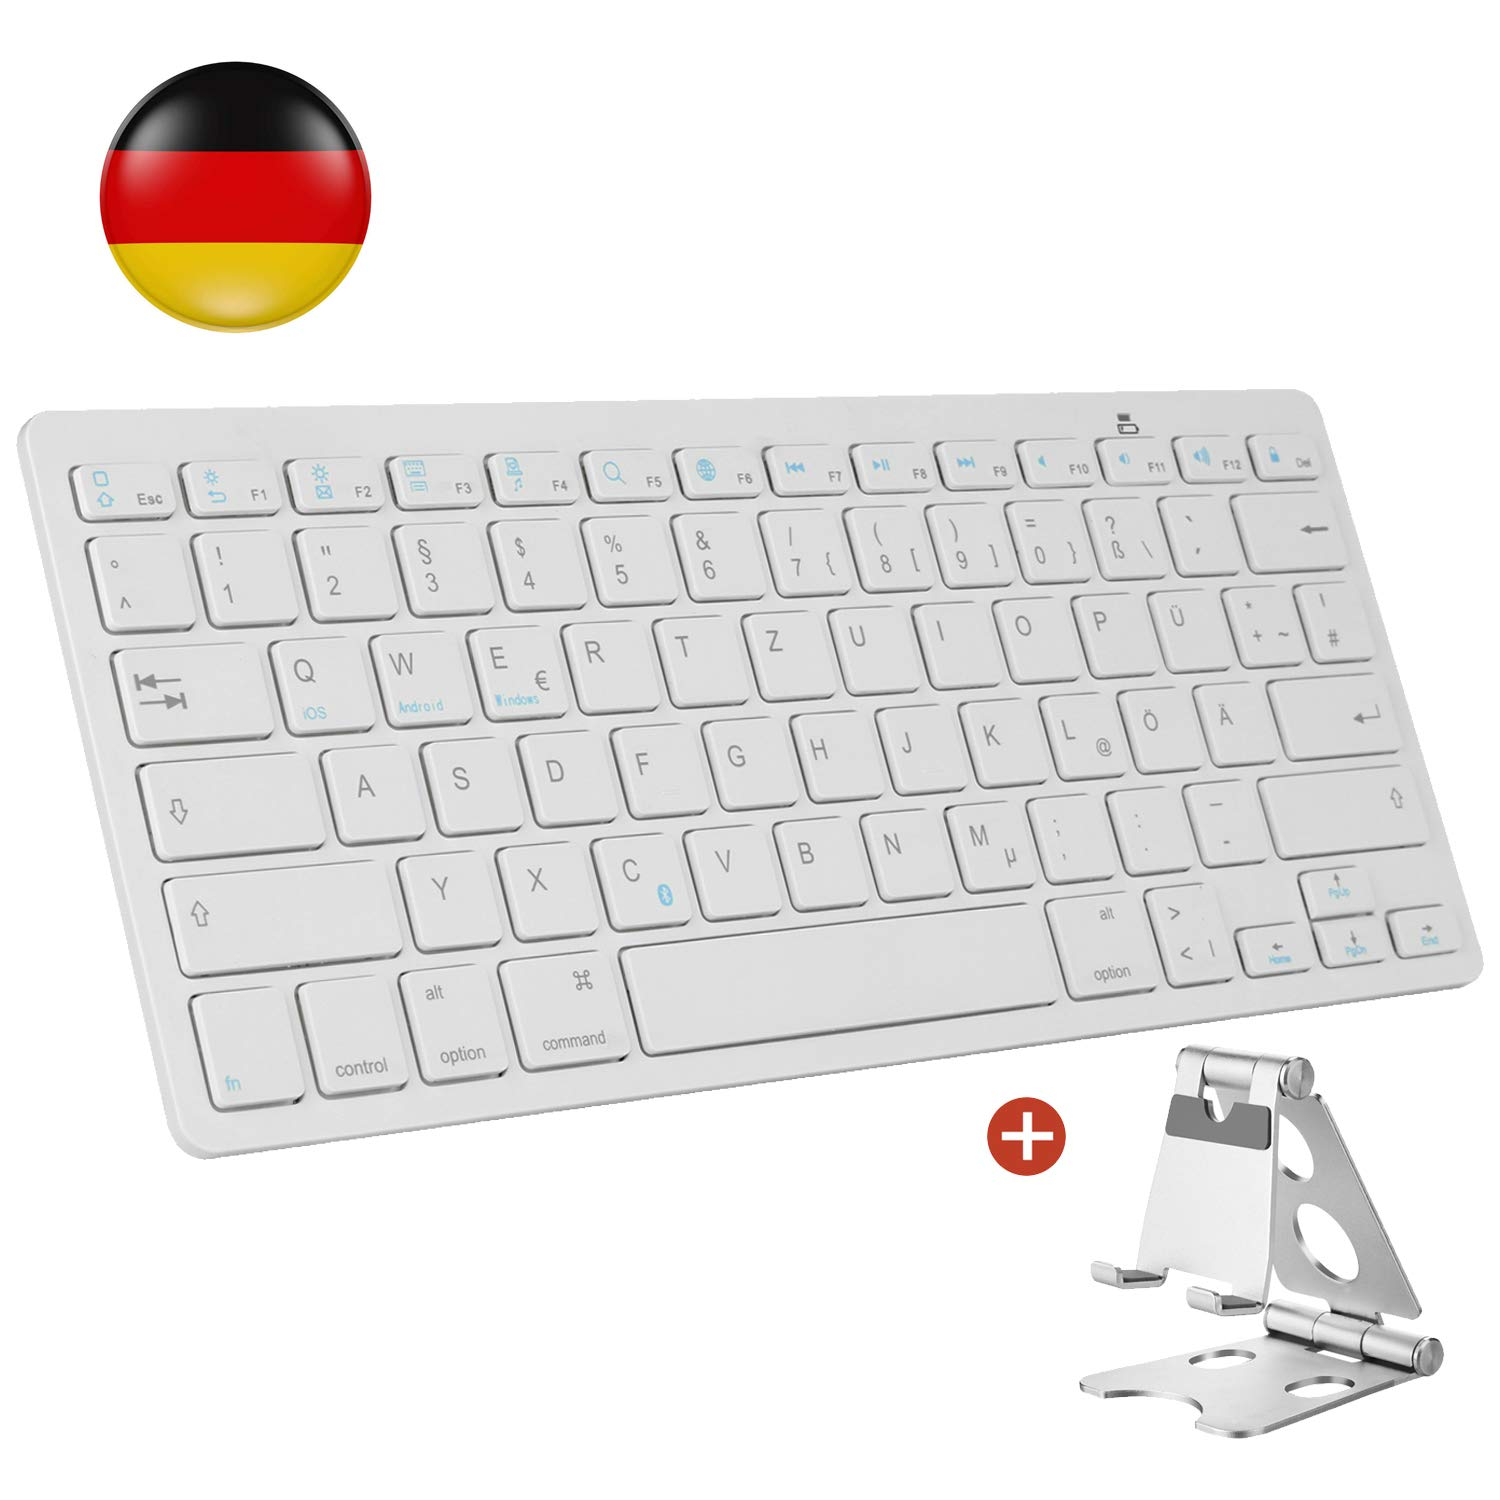 AGPTEK Kabellose Bluetooth Tastatur, Deutsches Bluetooth Tastatur (QWERTZ) mit Zusammenklappbarem Metall Stä nder fü r Apple, iPad, Tablet, Handy, geeignet fü r iOS, Android, Windows Systeme - MEHRWEG